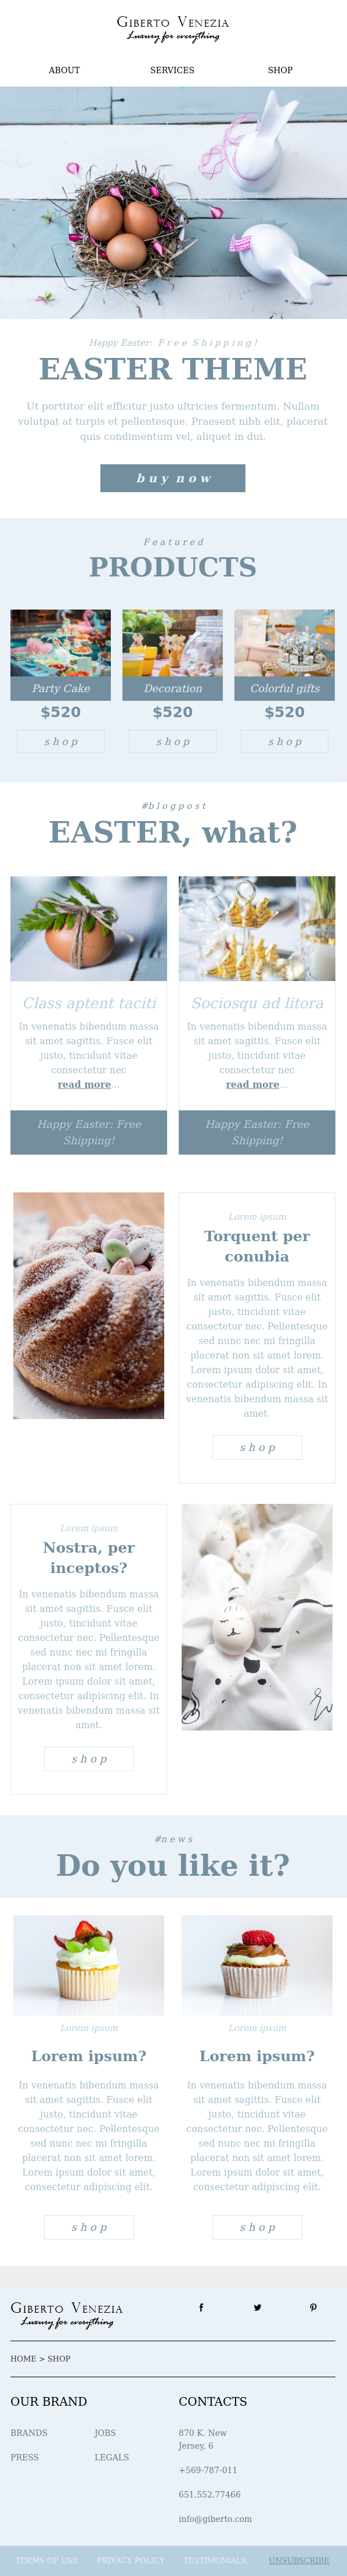 easter email templates, Free Easter Email Templates Ready to Use | HTML Emails